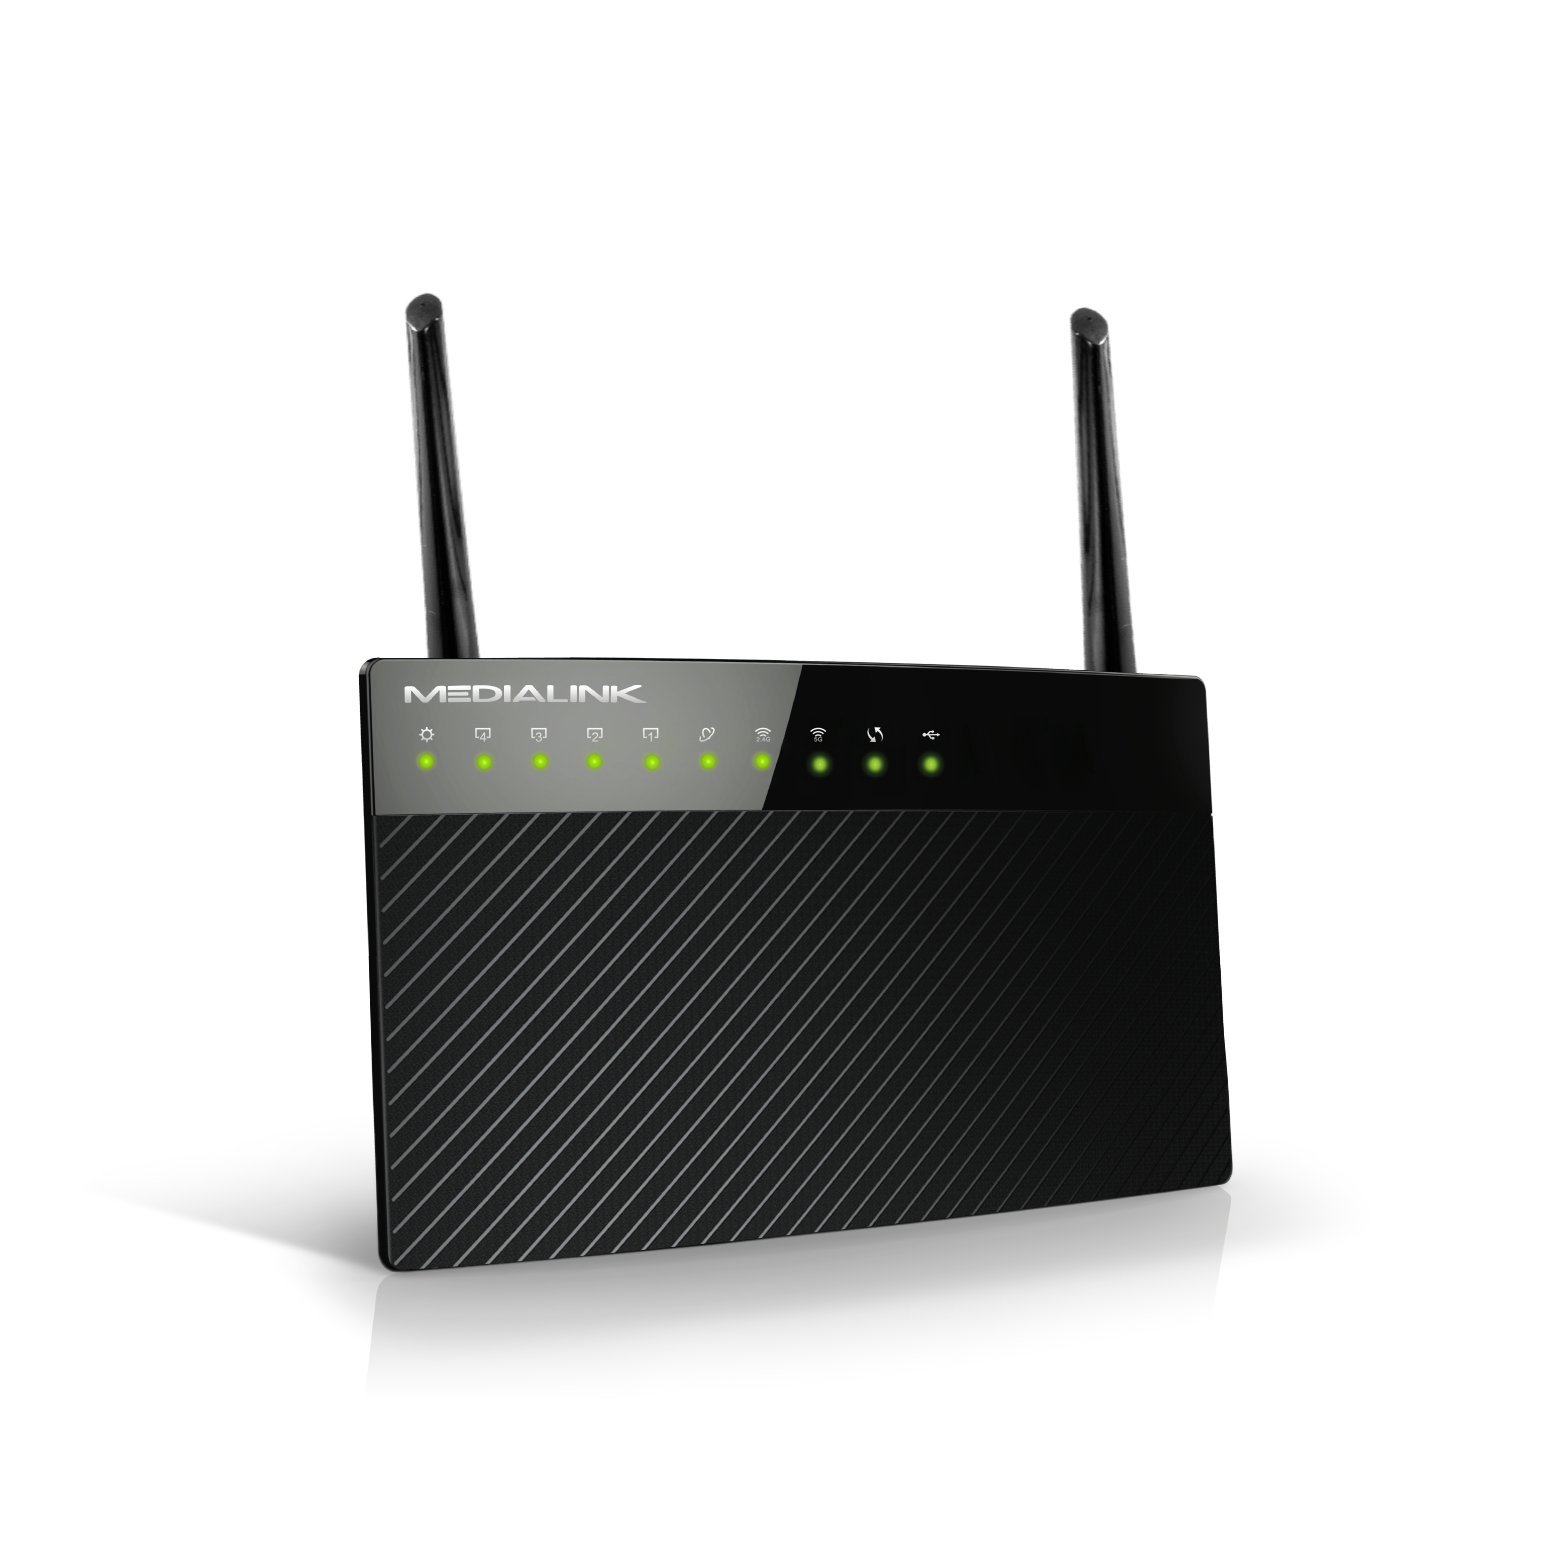 Medialink AC1200 Wireless Gigabit Router - Gigabit (1000 Mbps) Wired Speed & AC 1200 Mbps Combined Wireless Speed (Part# MLWR-AC1200R) by Mediabridge